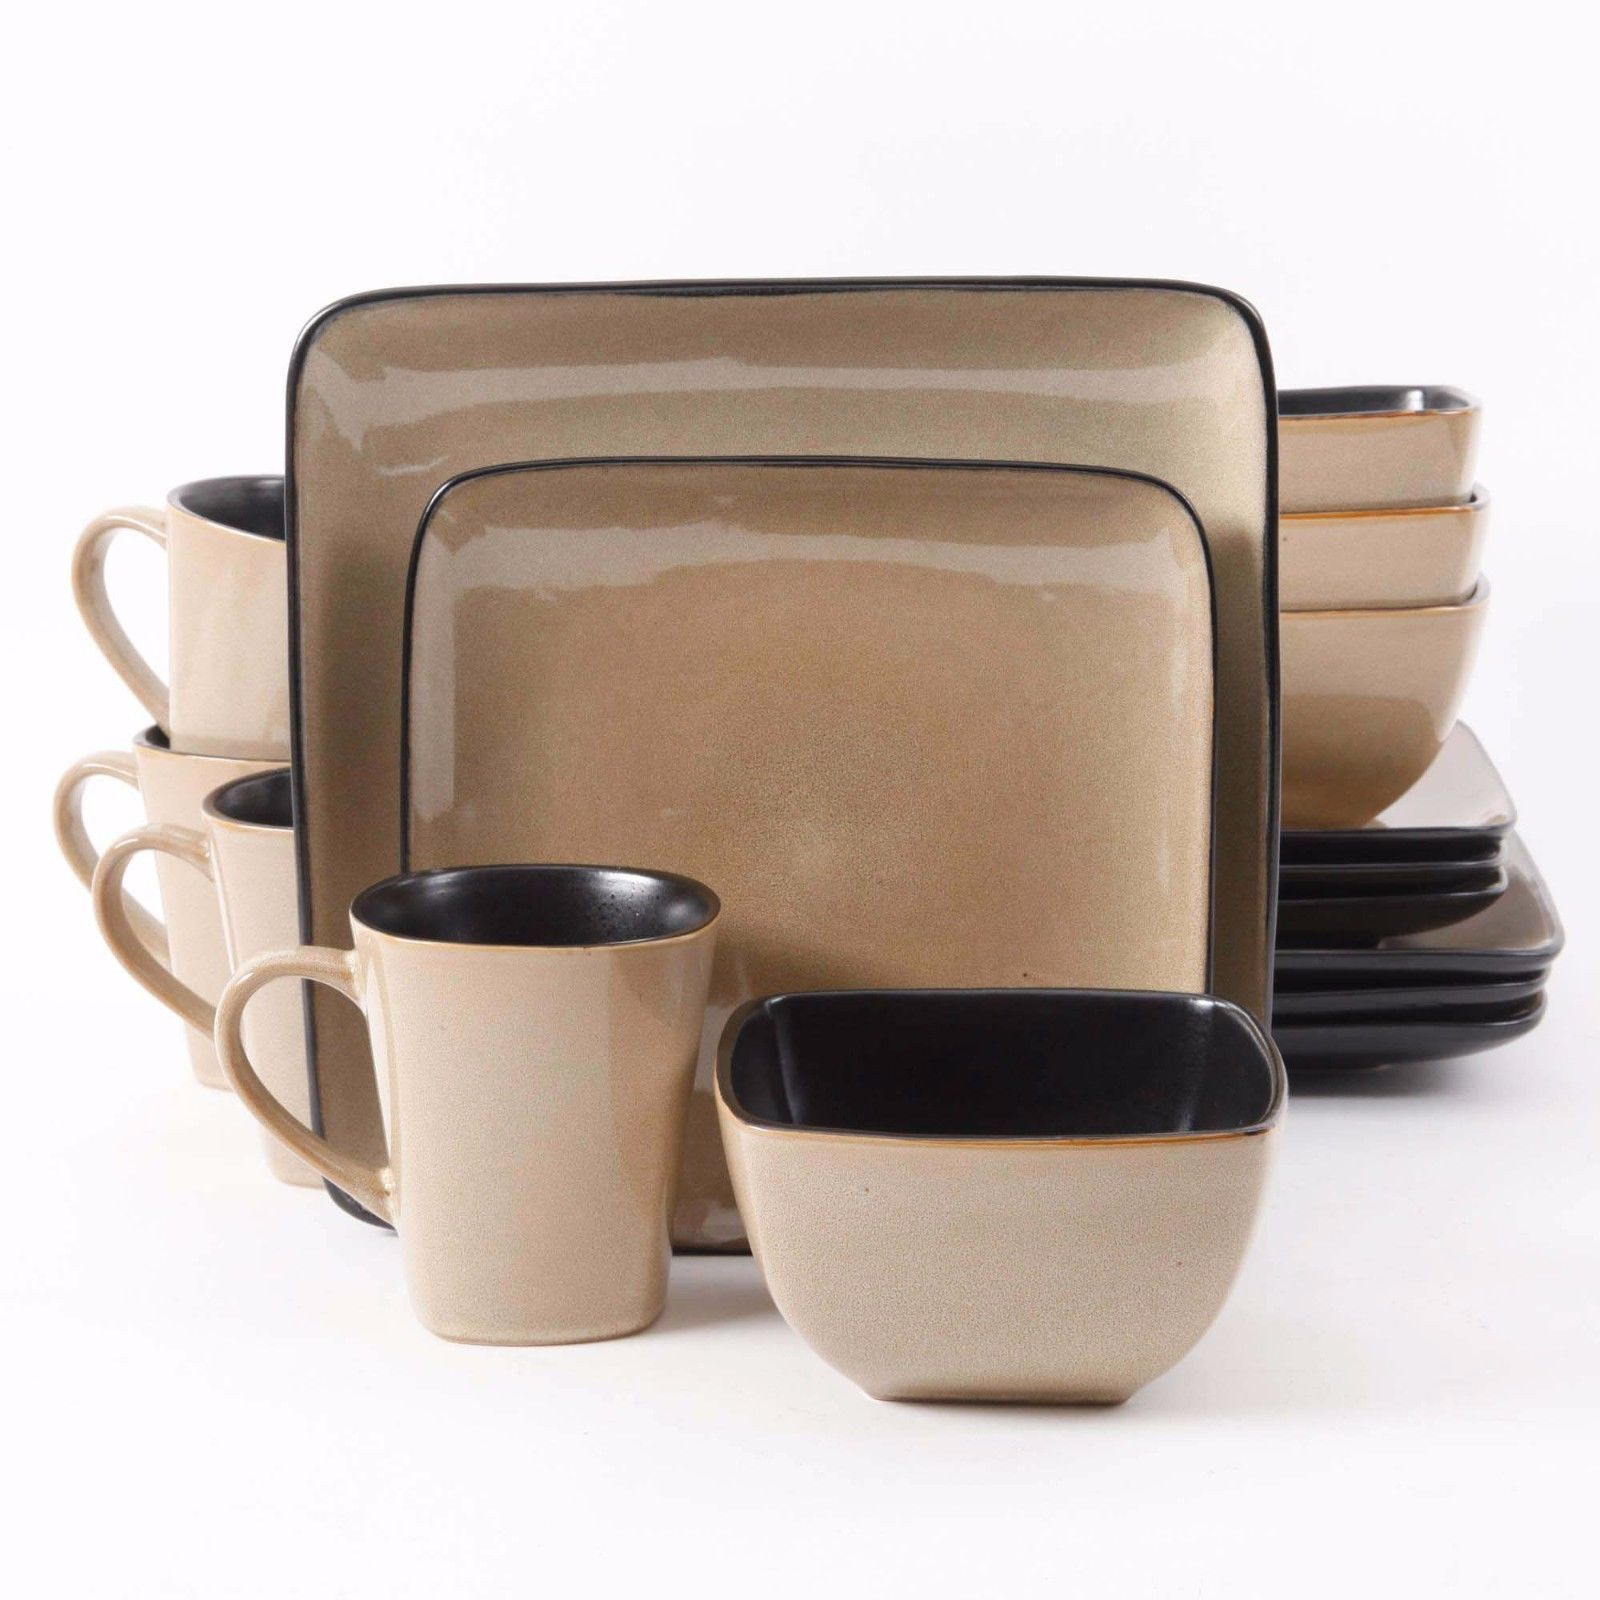 Creative stoneware dishes for dinnerware collection with stoneware dishes made in usa